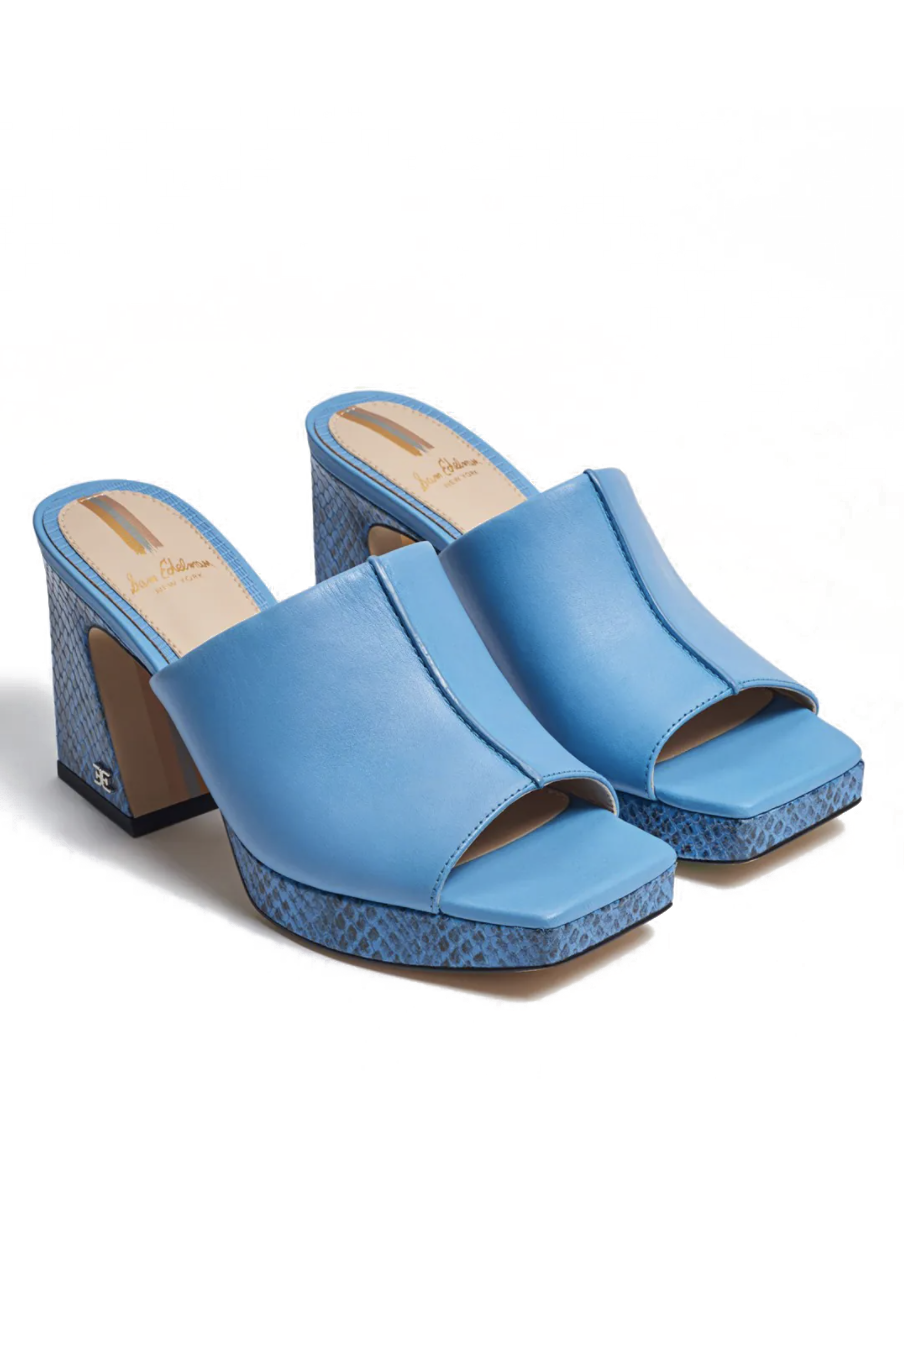 """<p><strong>Sam Edelman</strong></p><p>samedelman.com</p><p><strong>$150.00</strong></p><p><a href=""""https://go.redirectingat.com?id=74968X1596630&url=https%3A%2F%2Fwww.samedelman.com%2Fproduct%2Fwomens-wilton-block-heel-mule-3021509%2Ftrue-blue-leather-ec0209745&sref=https%3A%2F%2Fwww.marieclaire.com%2Ffashion%2Fg27205502%2Fcomfortable-walking-sandals-women%2F"""" rel=""""nofollow noopener"""" target=""""_blank"""" data-ylk=""""slk:SHOP IT"""" class=""""link rapid-noclick-resp"""">SHOP IT</a></p><p>Had enough of your basic black and white sandals? Then why not give this pair of mules from Sam Edelman a spin? Yes, the heel is a little high, but the slight platform and wide strap make walking around a breeze. </p>"""